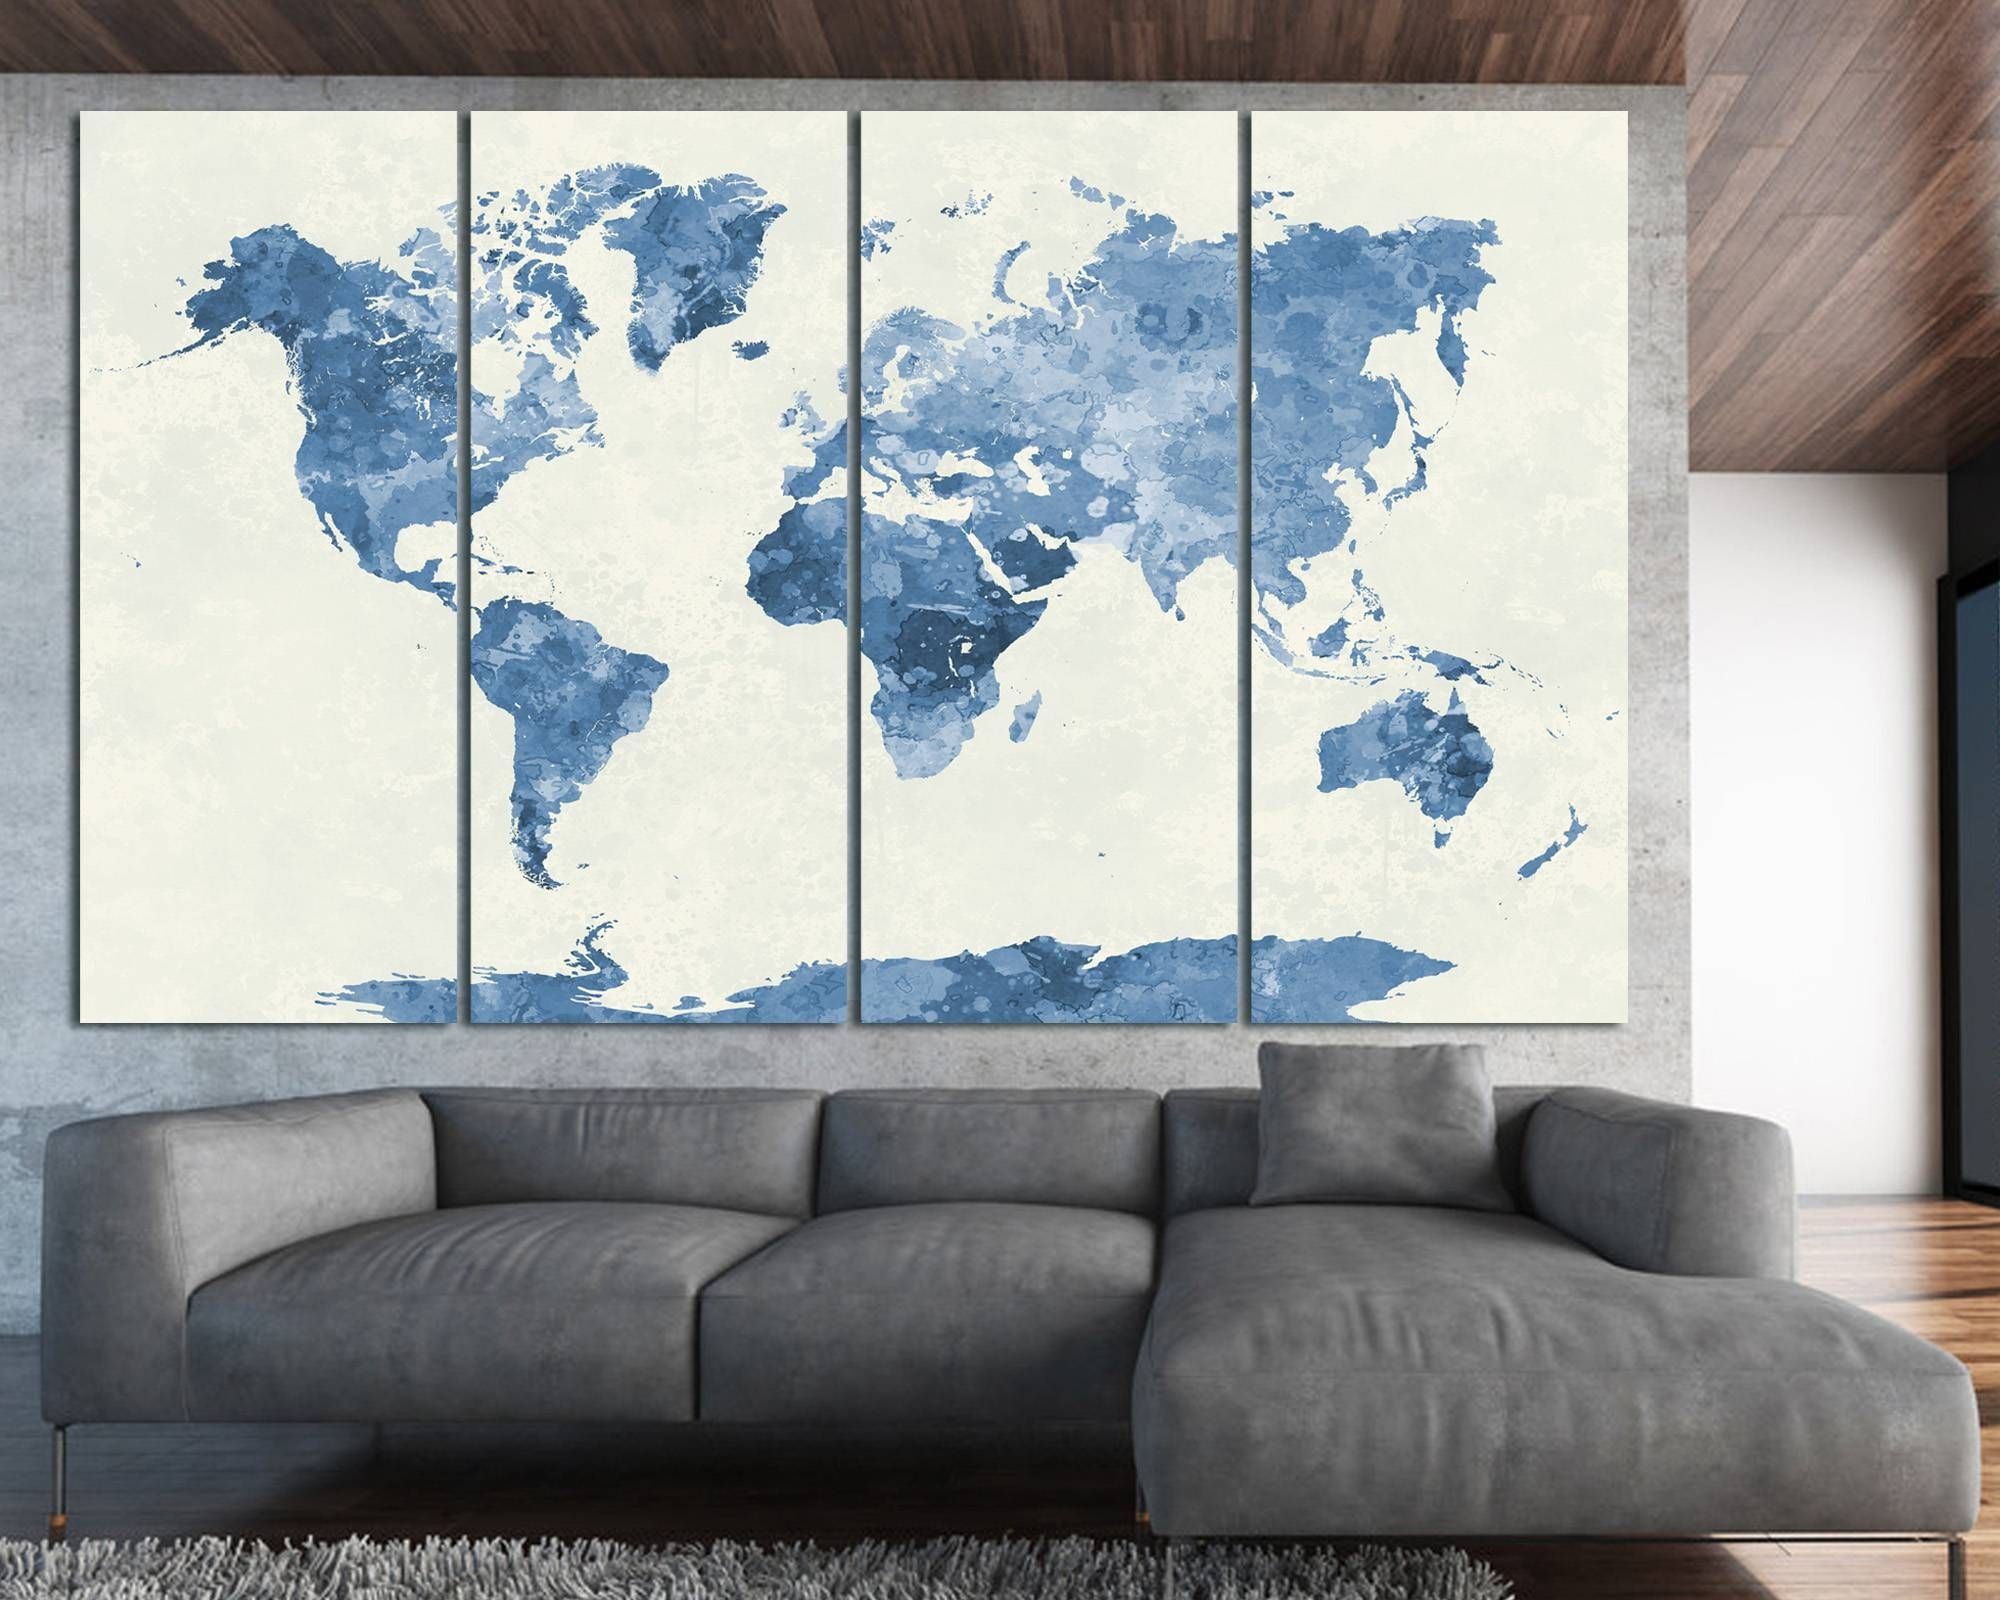 Navy Blue Watercolor World Map Print At Texelprintart With Regard To Most Current Dark Blue Wall Art (View 17 of 20)